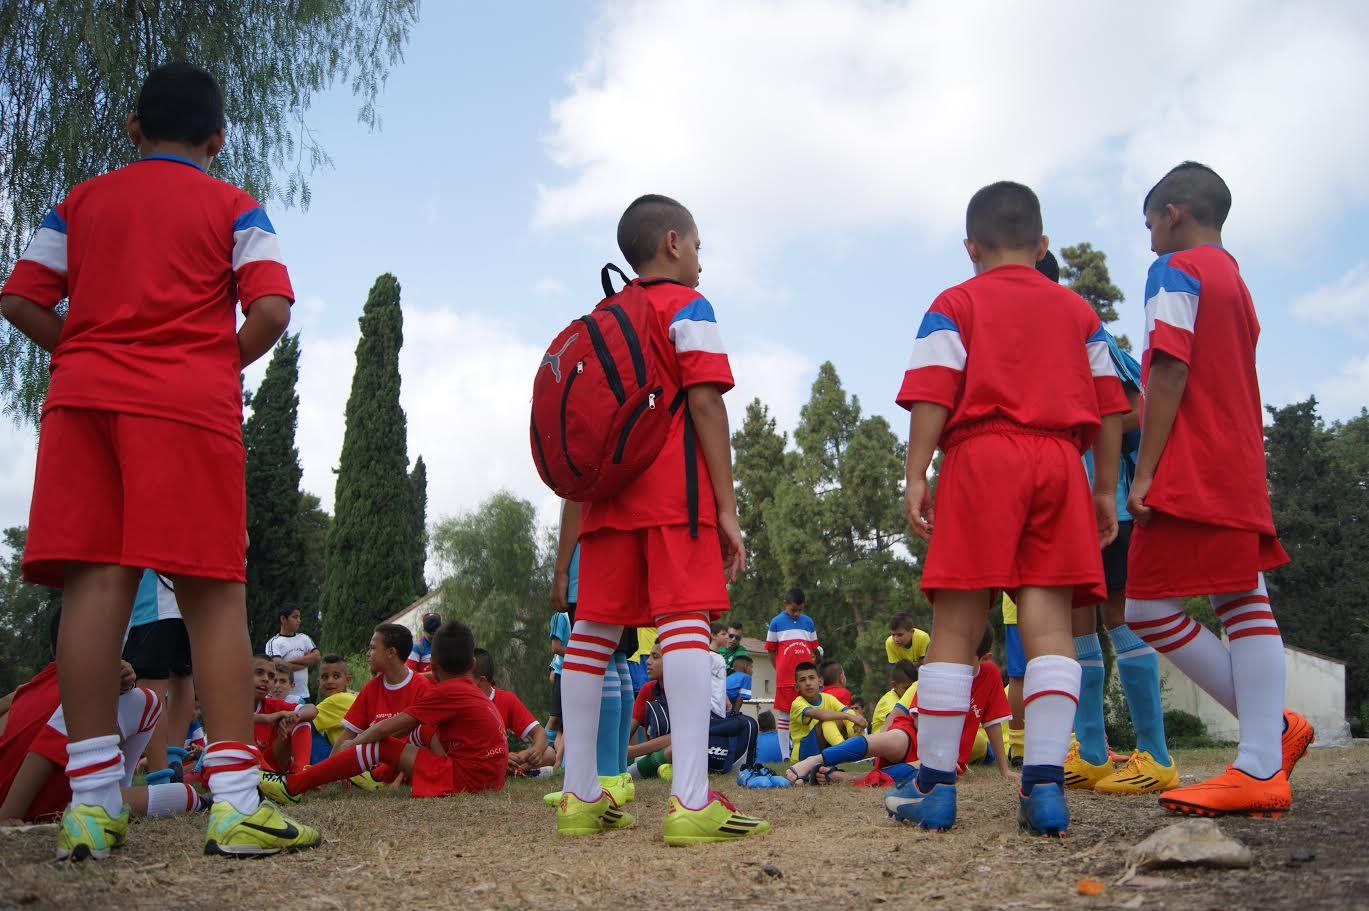 Young Arab and Jewish boys participating in the Soccer for Peace summer camp 2016 prepare for their first training session